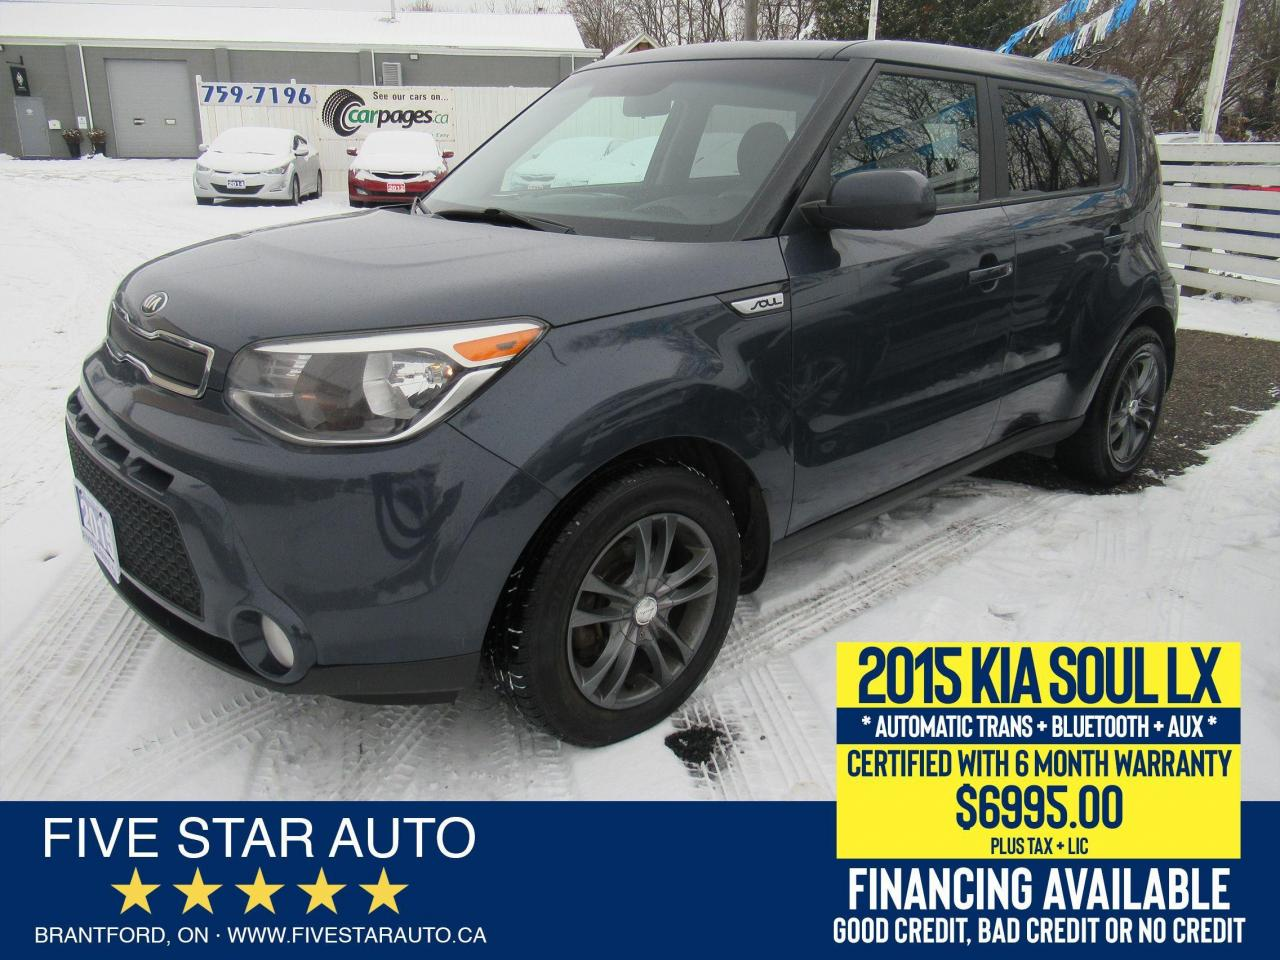 2015 Kia Soul LX - Certified w/ 6 Month Warranty